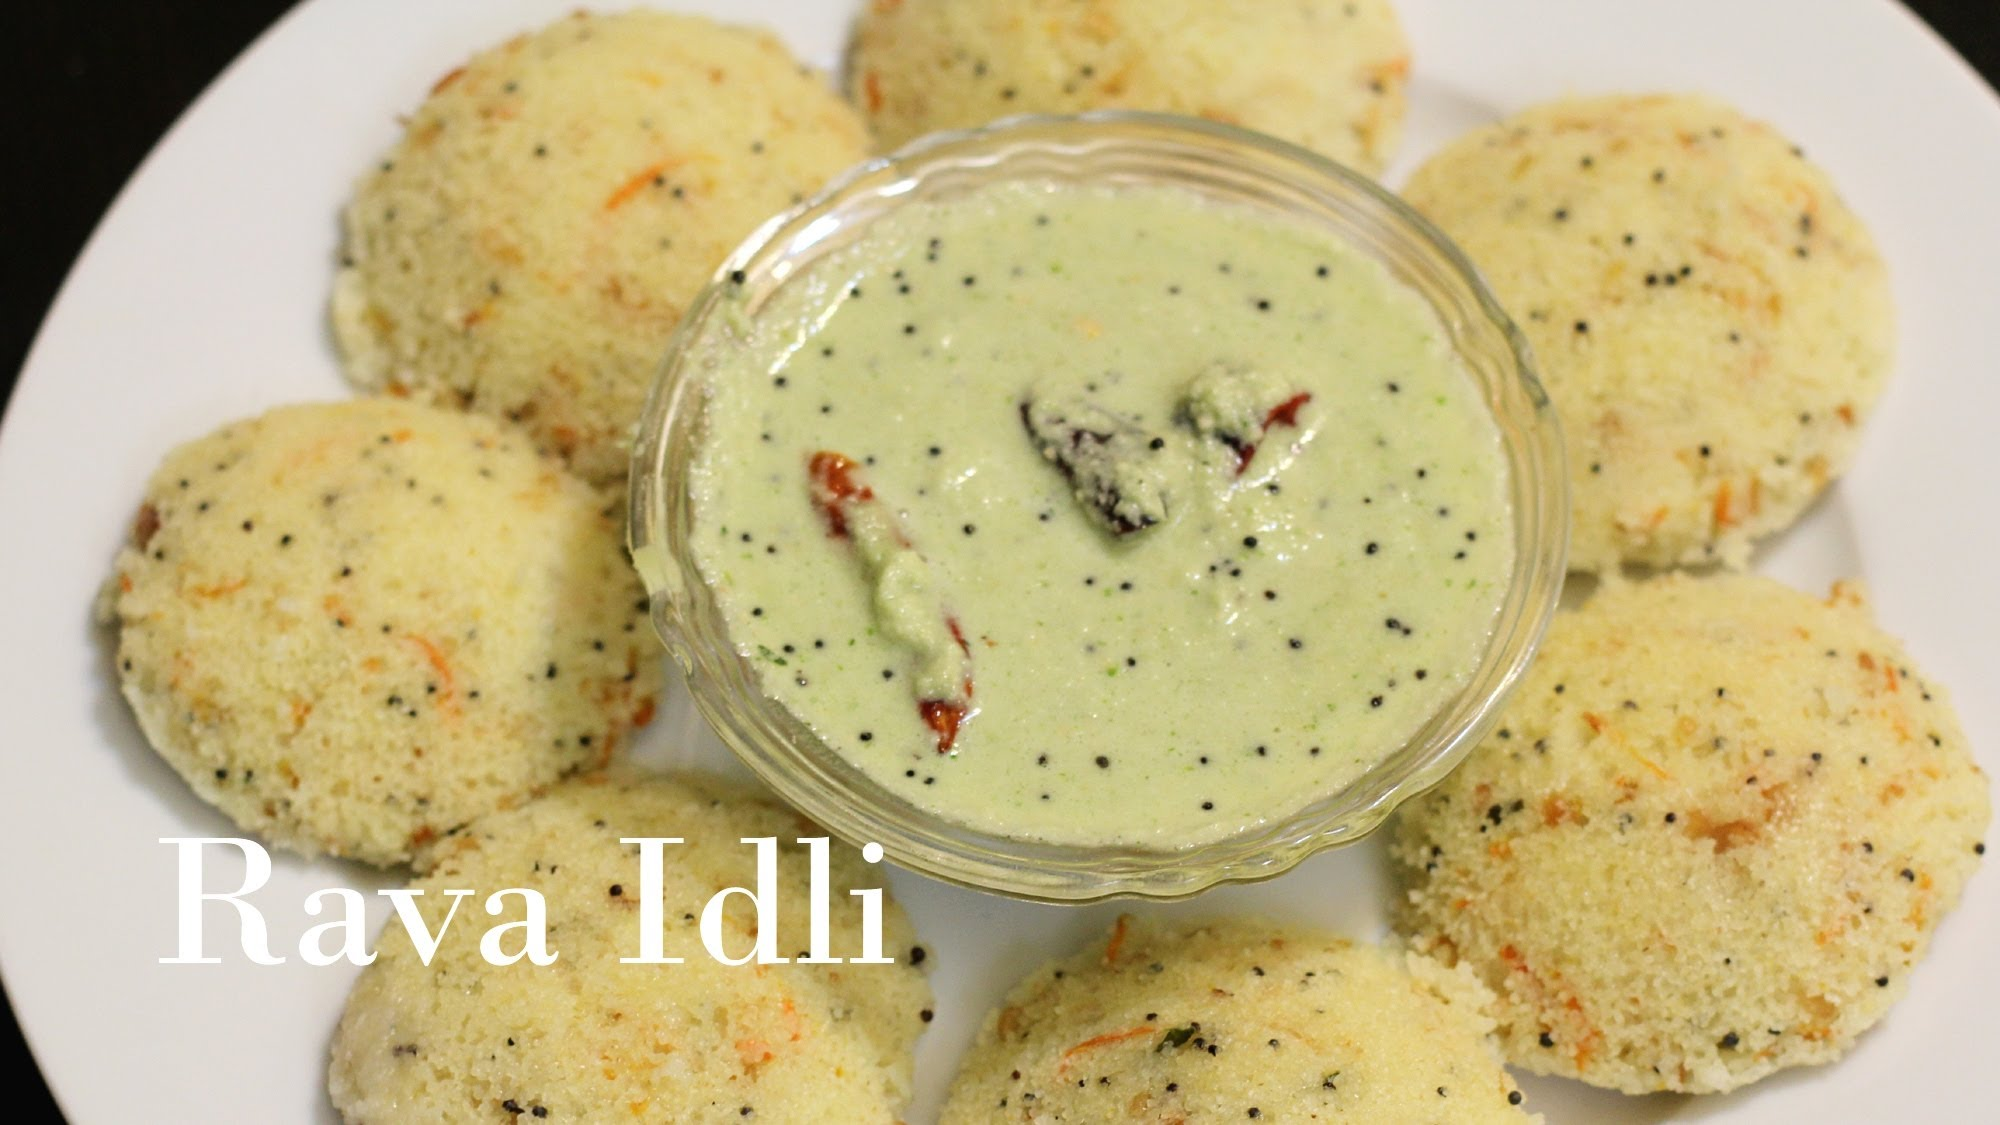 Rava sooji idli semolina dumplings recipes quick easy indian snack rava sooji idli semolina dumplings recipes quick easy indian snack appetizers breakfast recipe qtiny forumfinder